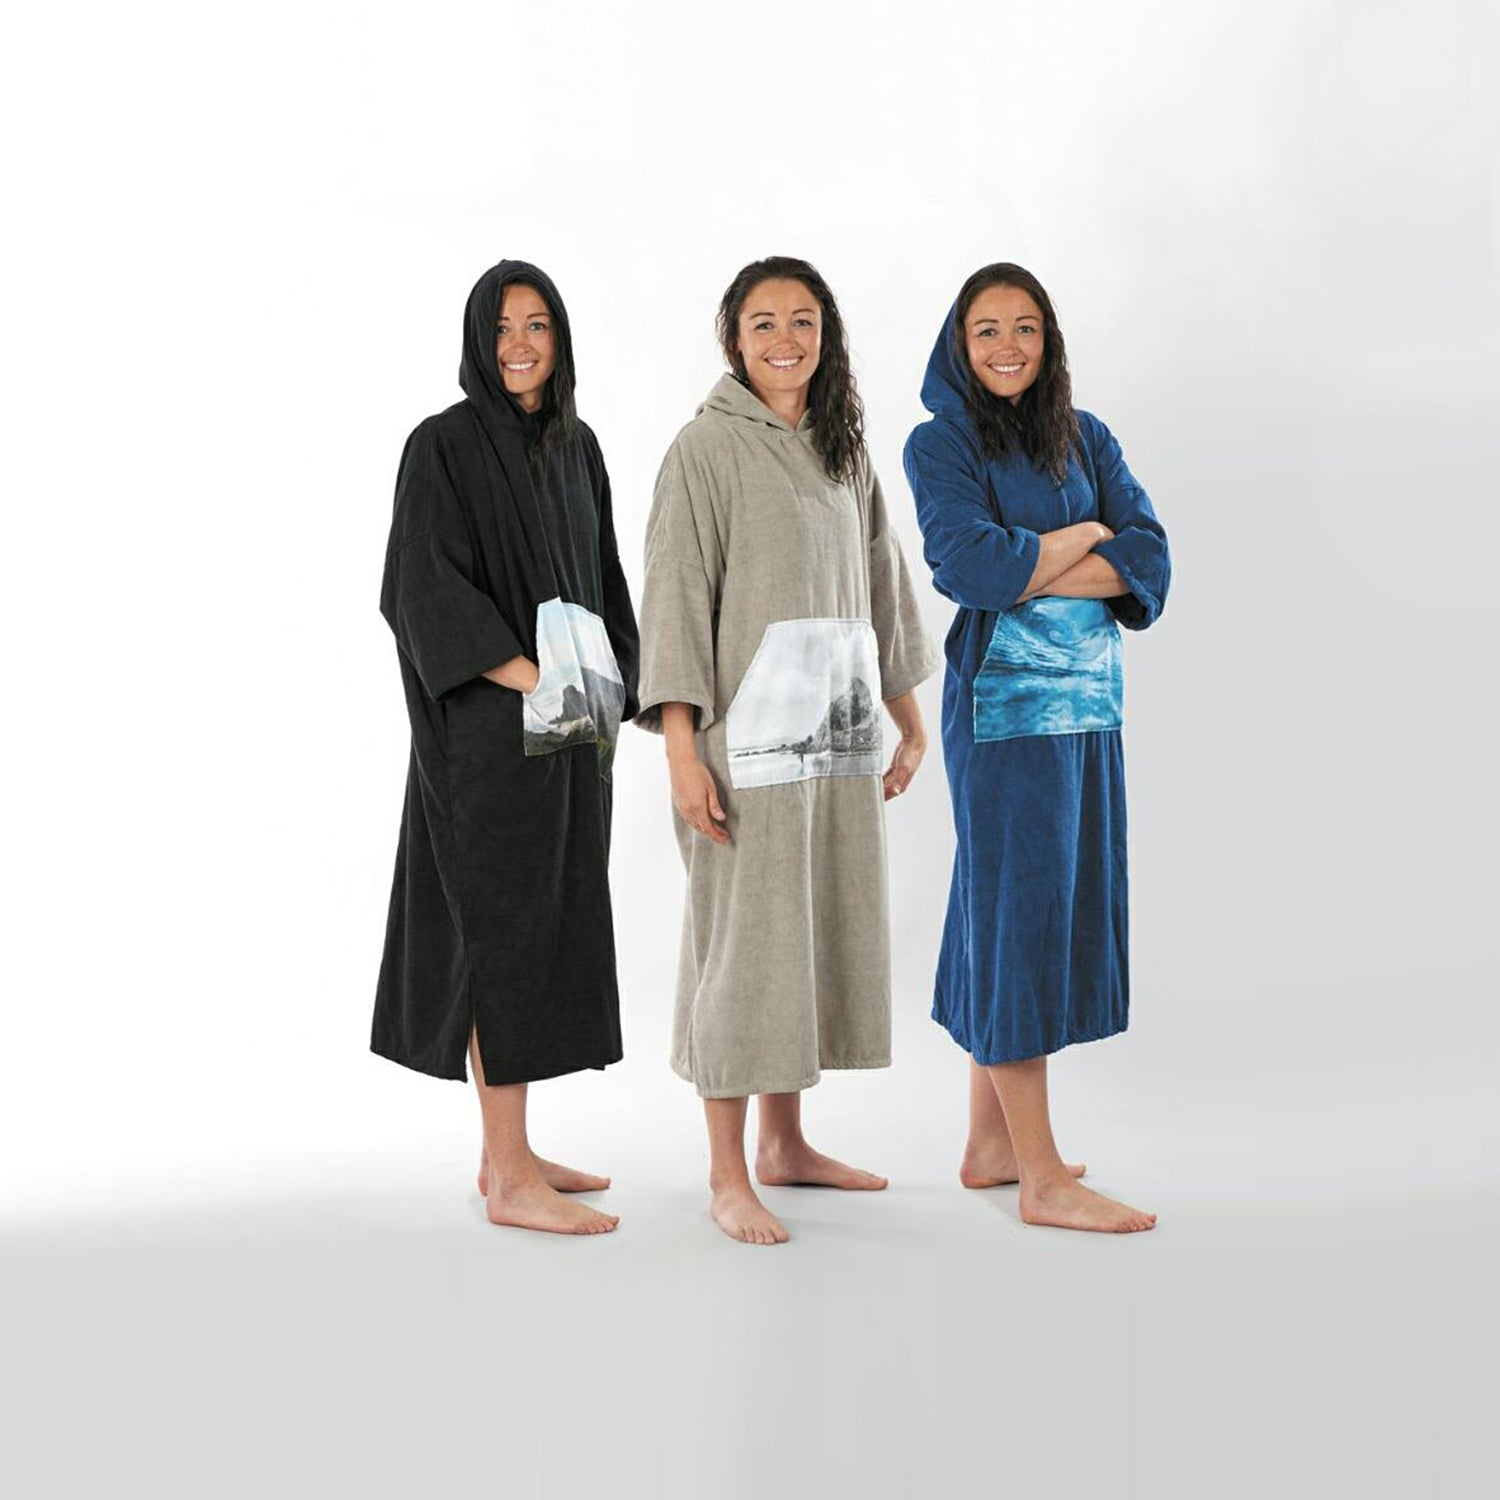 Googee Design Auckland New Zealand hooded towels Christmas ideas Camille Co. blog post